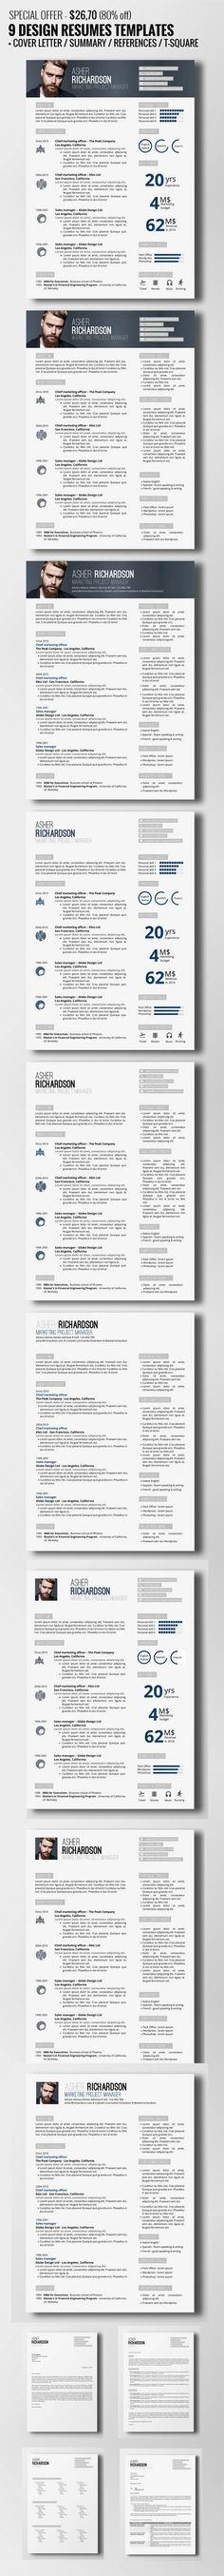 435 best Resume images on Pinterest Resume design, Design resume - resume sample experience